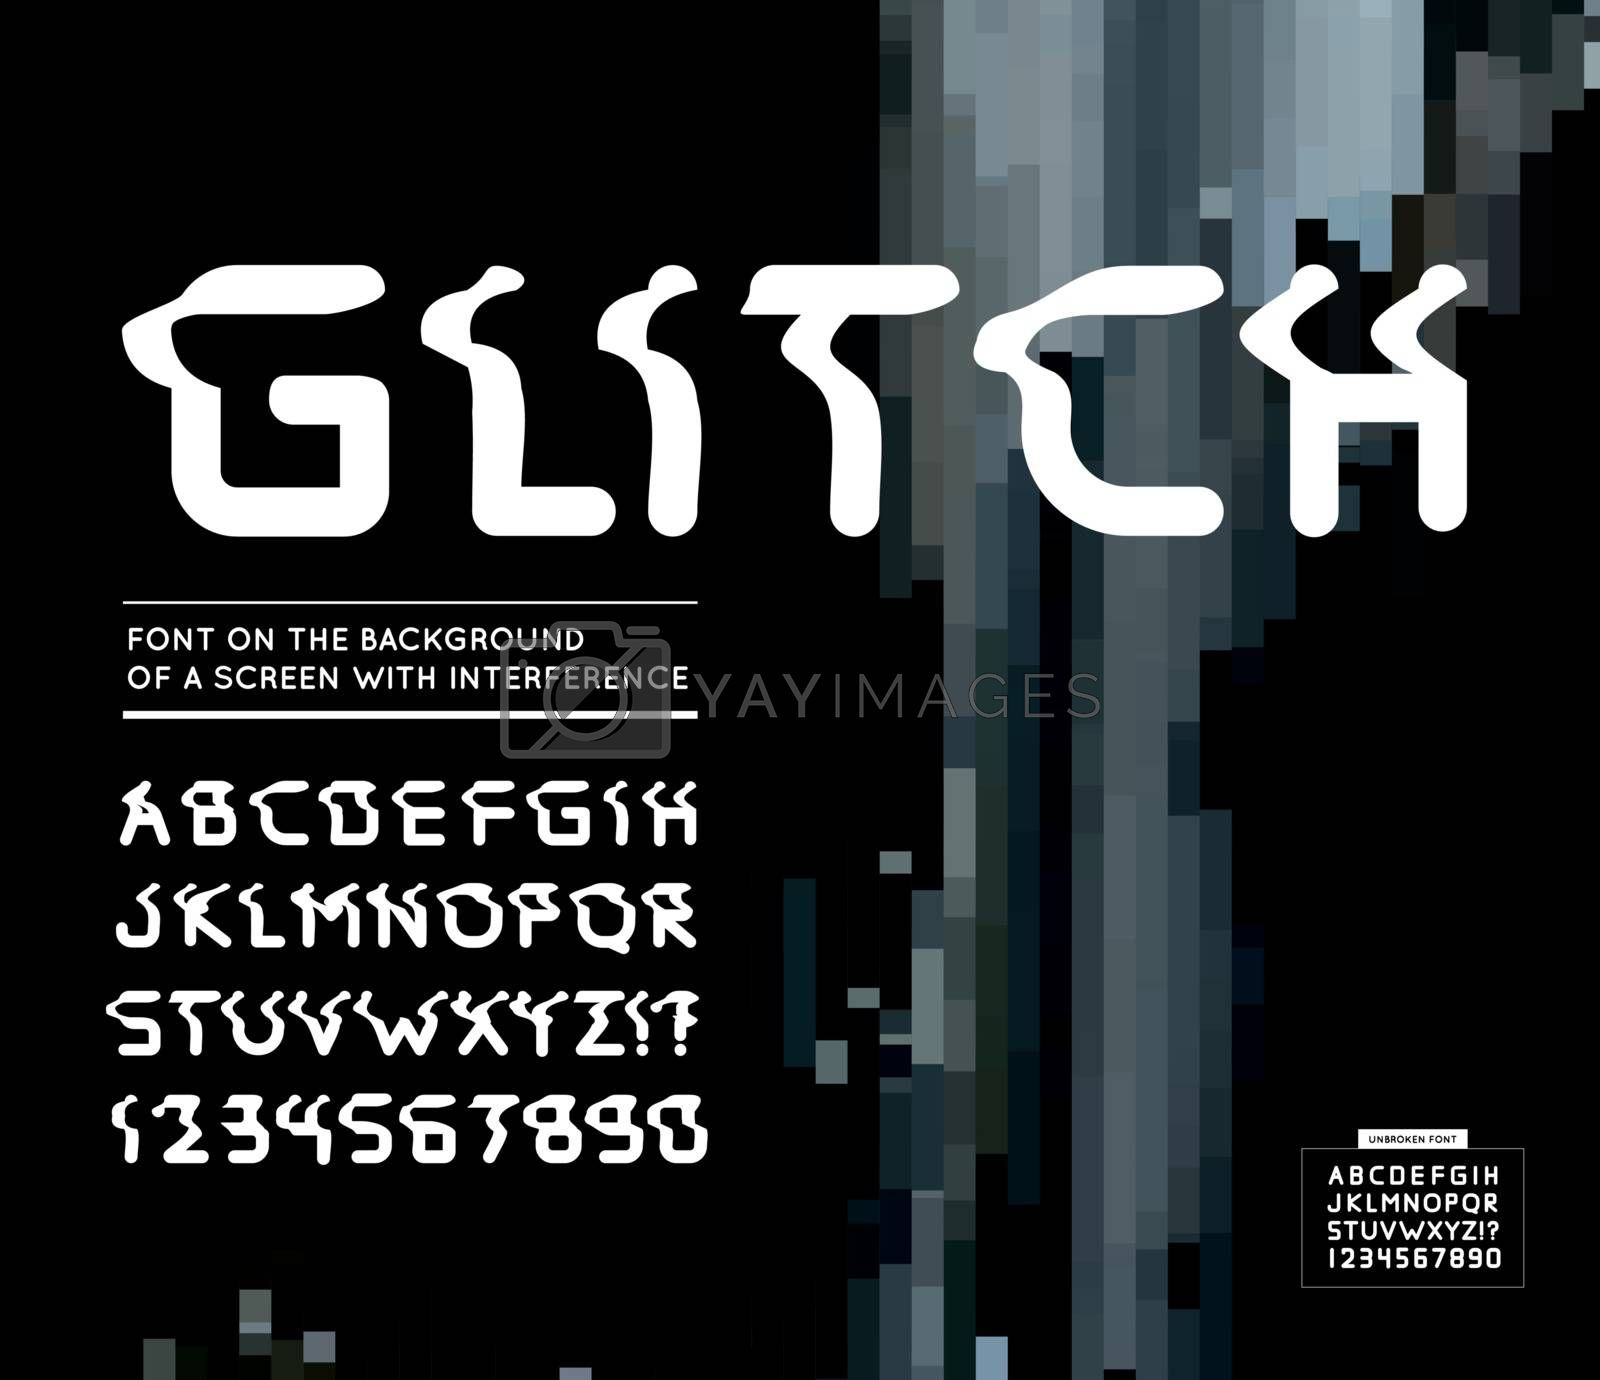 Glitch font. Vector illustration on background of a screen with interference